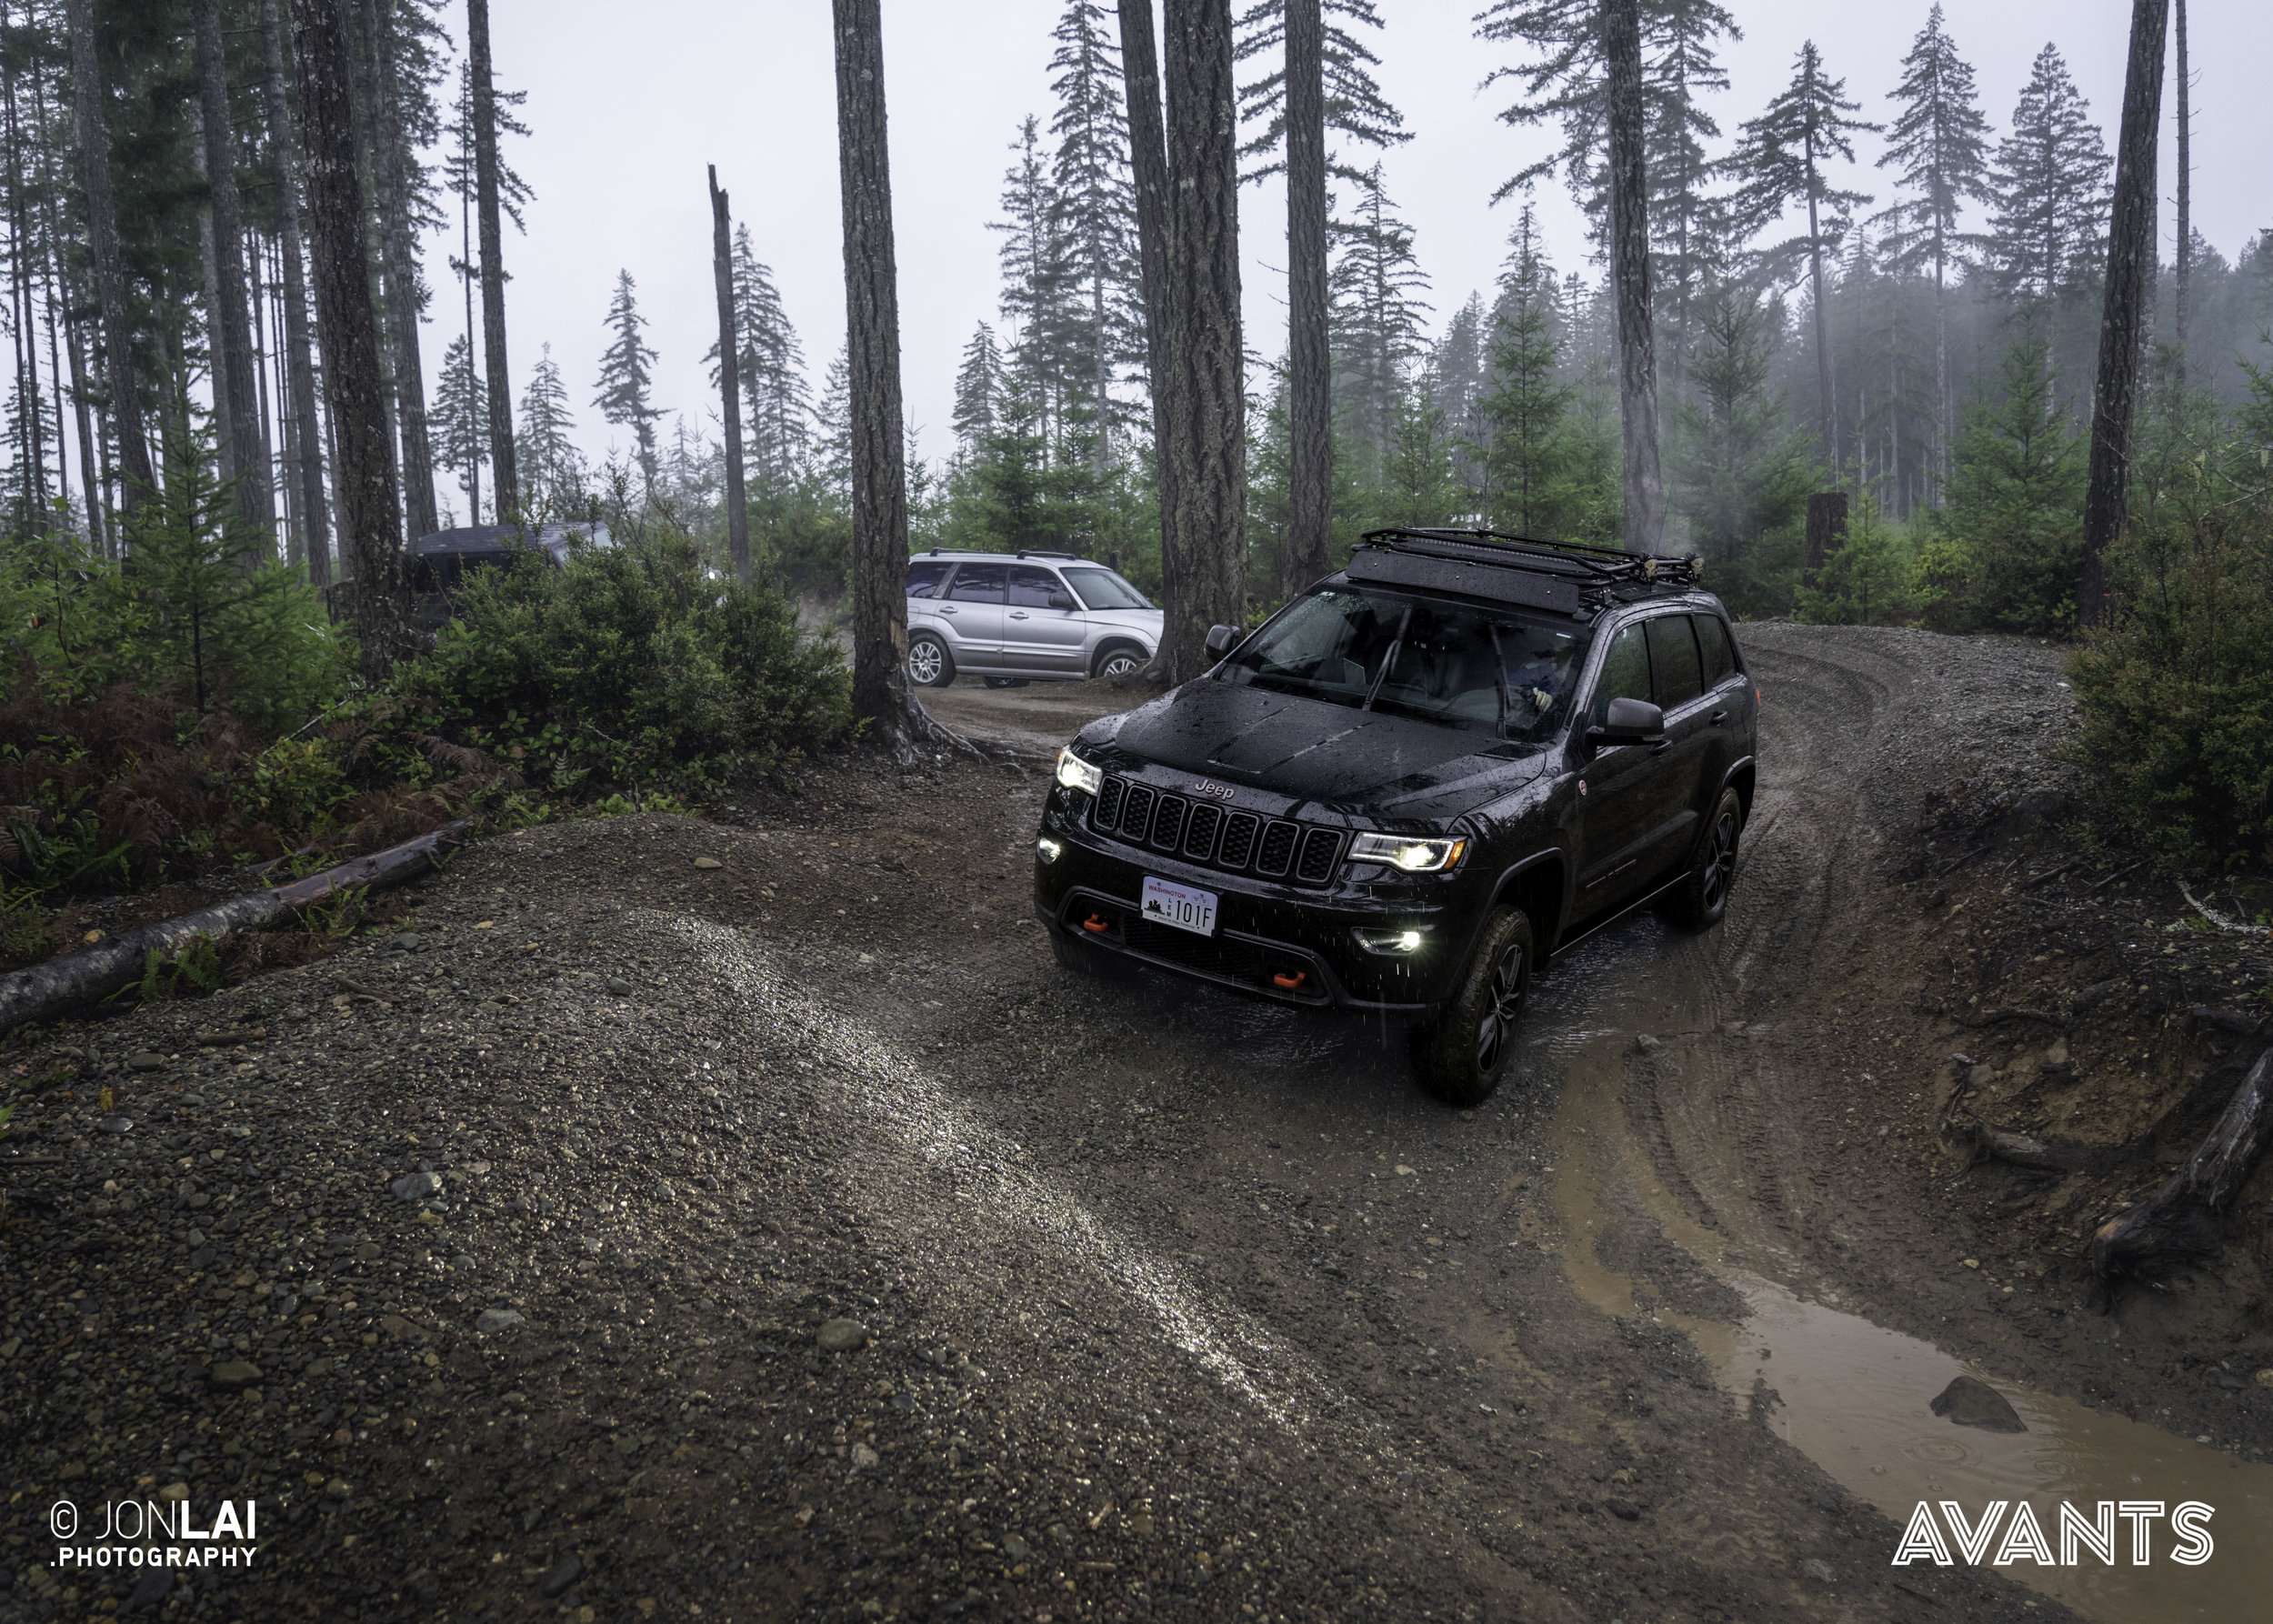 AVANTS_OffRoad-2162-Edit.jpg